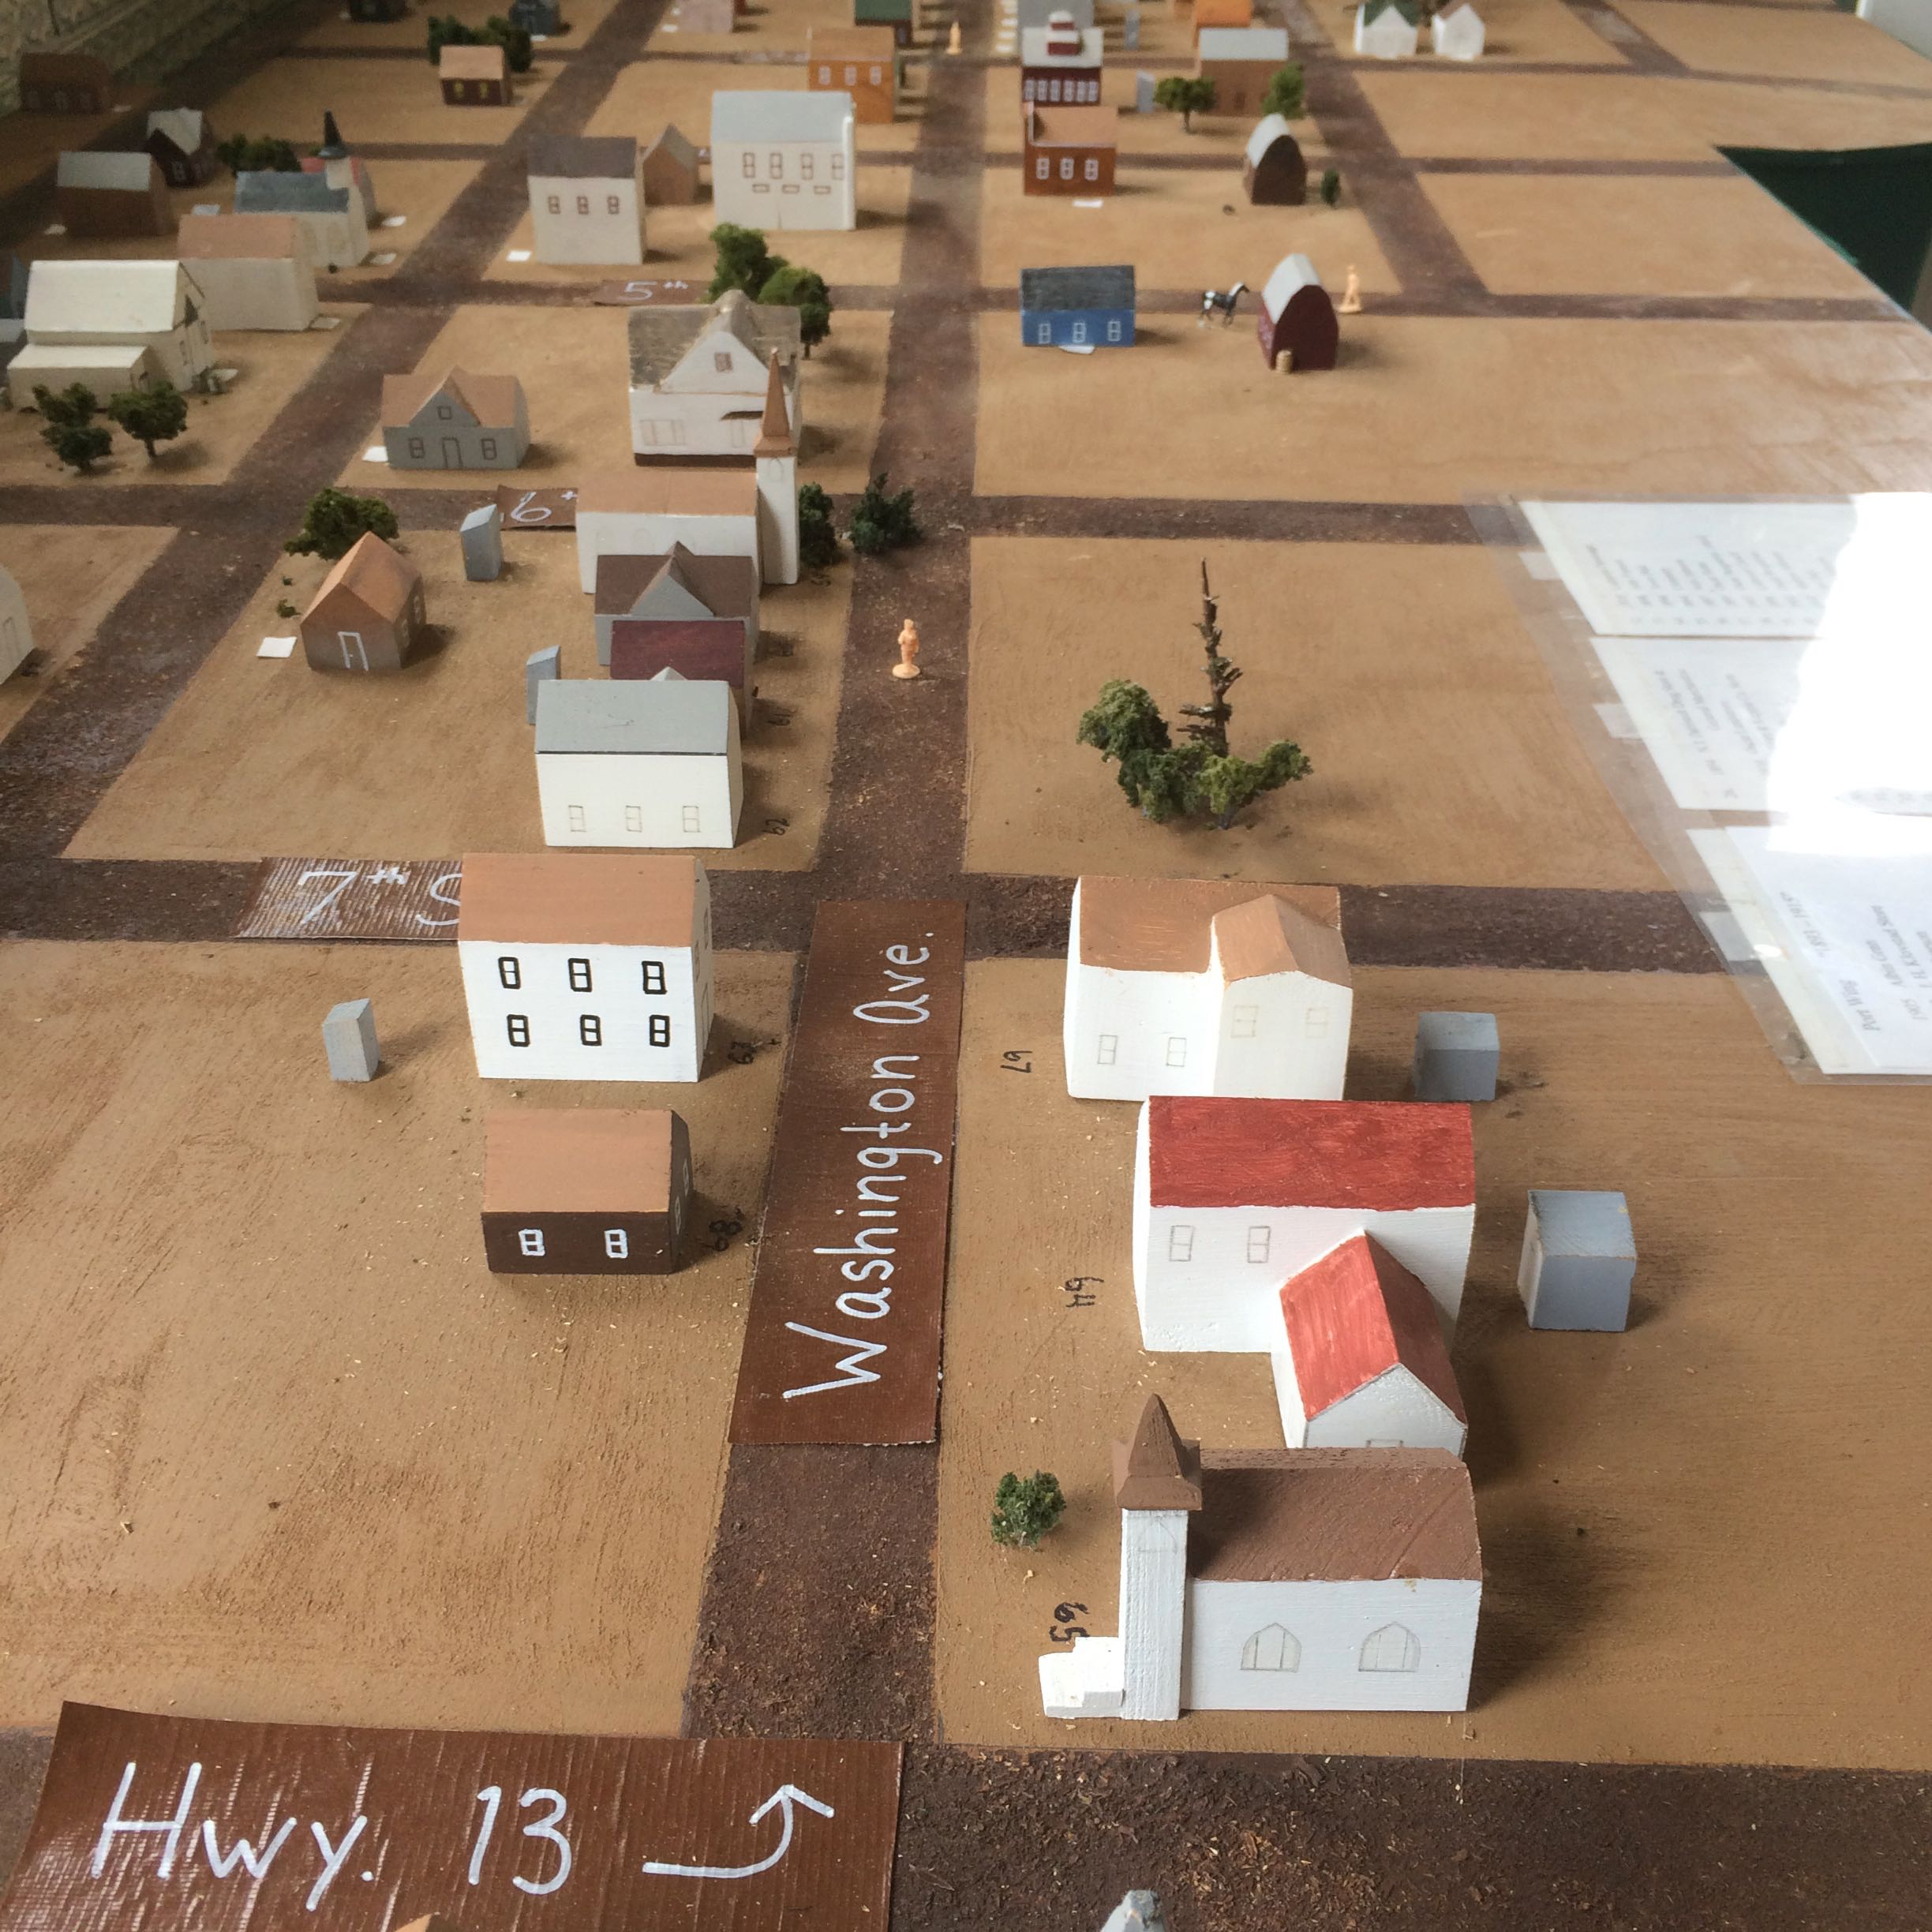 Model that replicates town buildings in the early 1900's